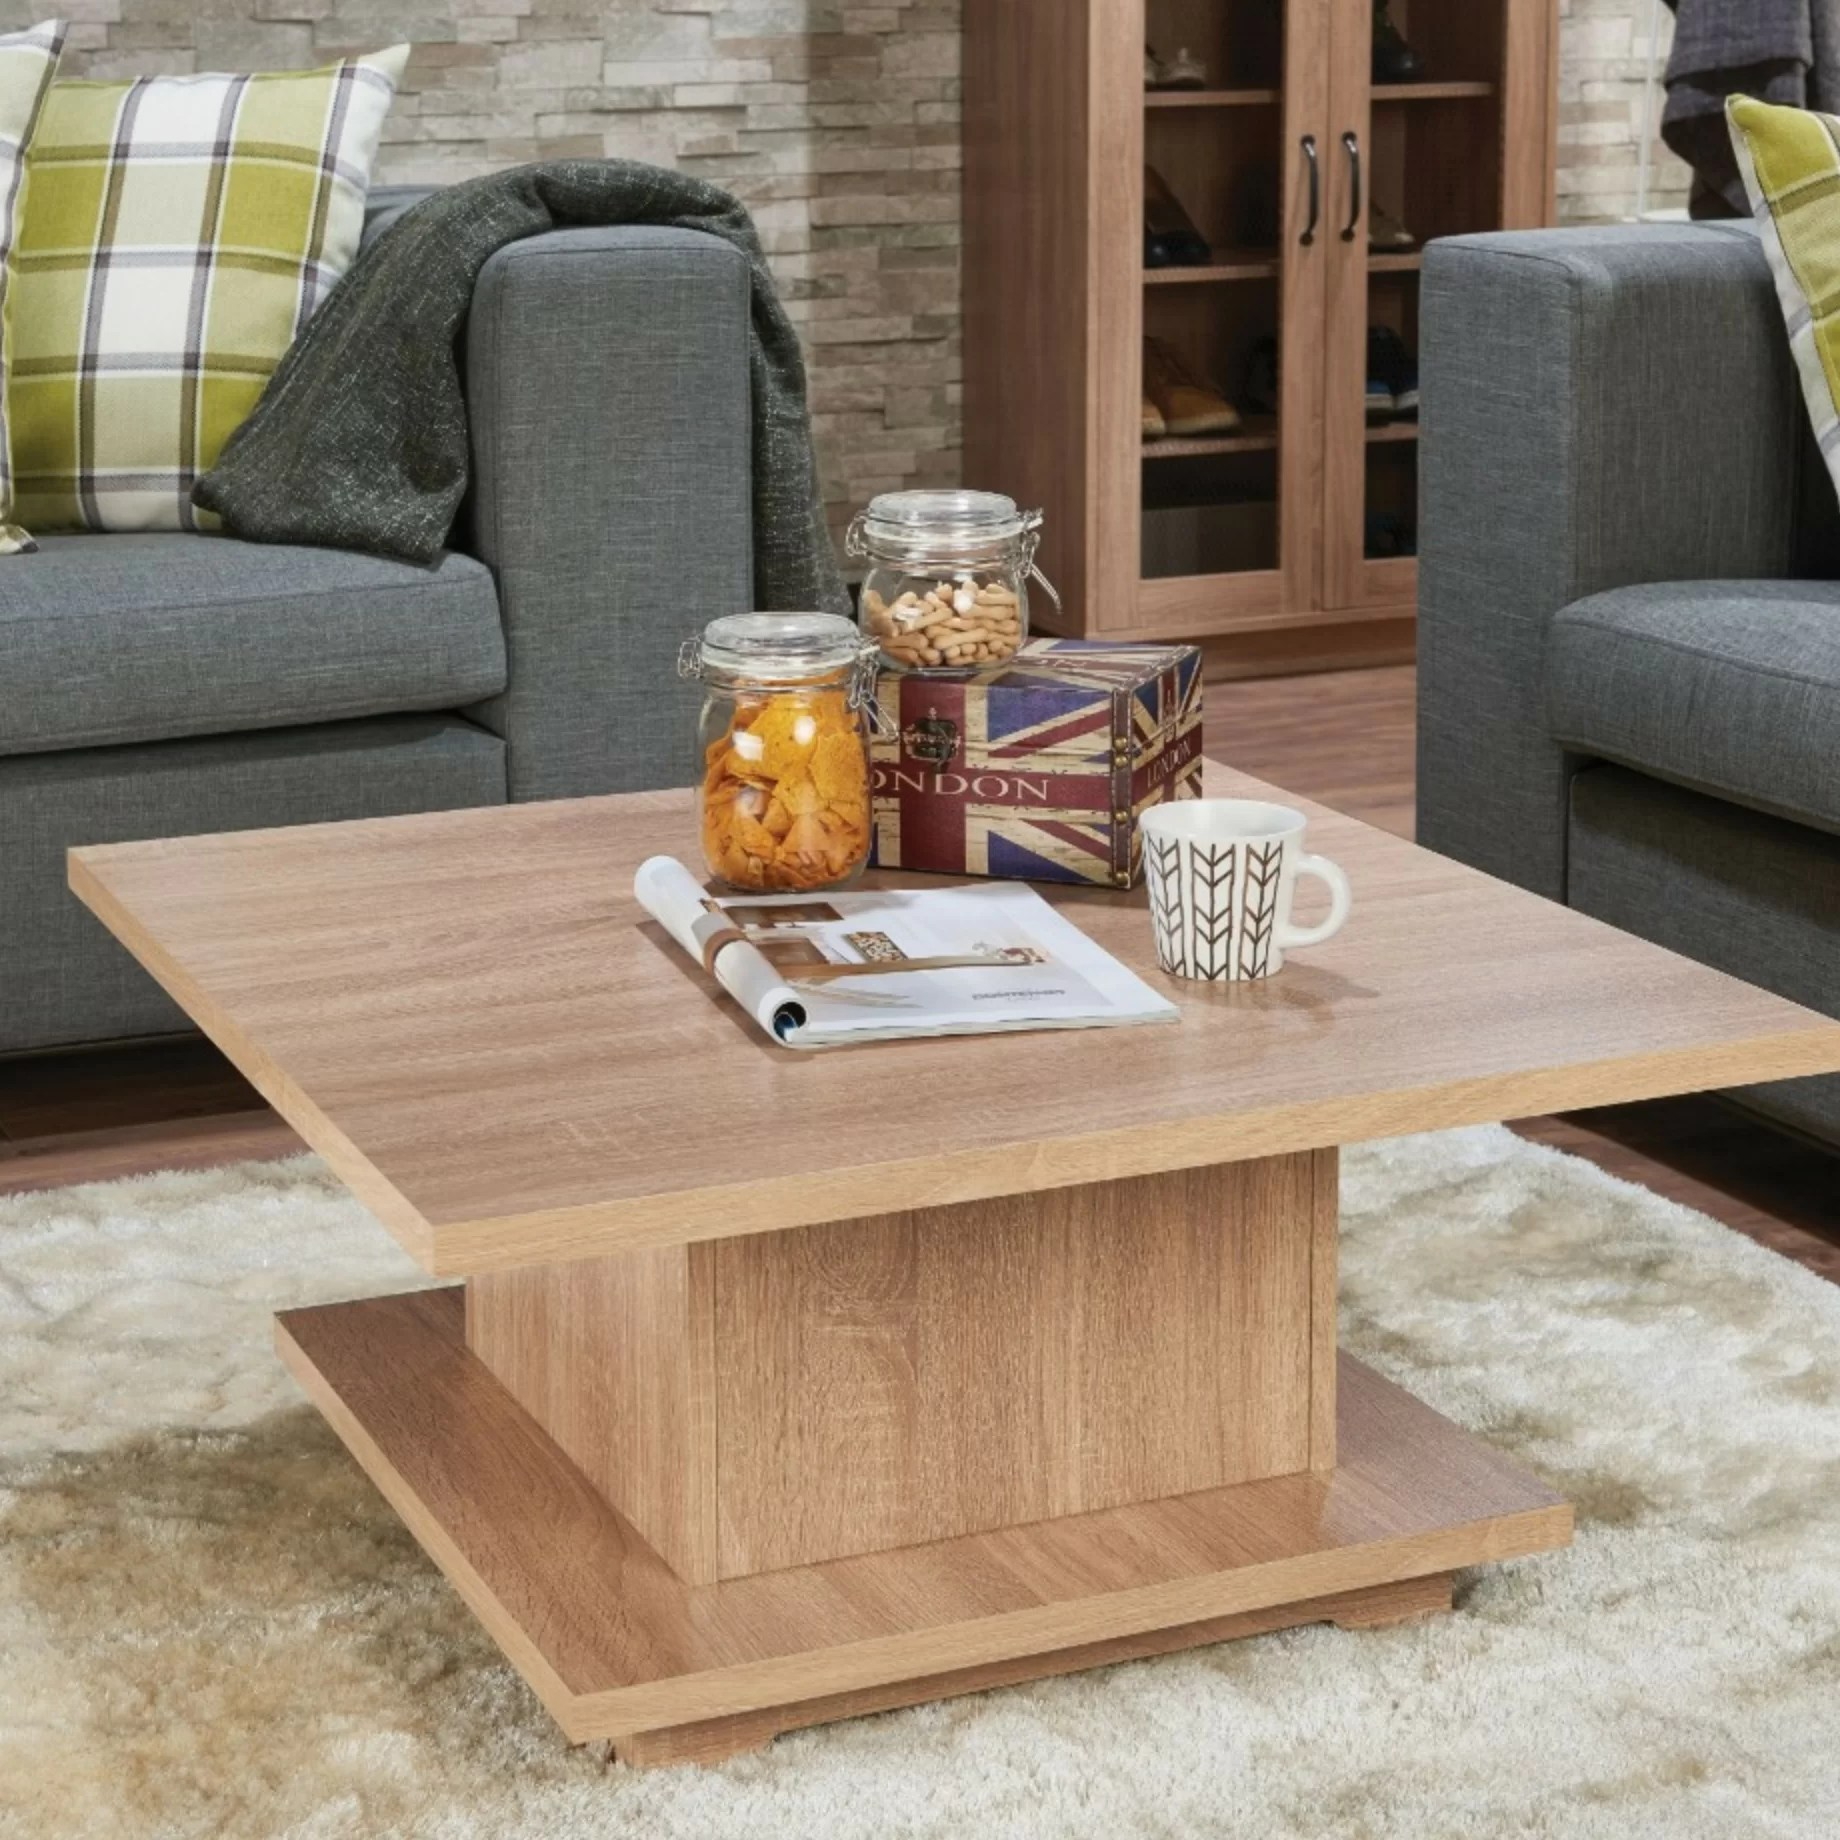 dossett contemporary square wooden coffee table with storage